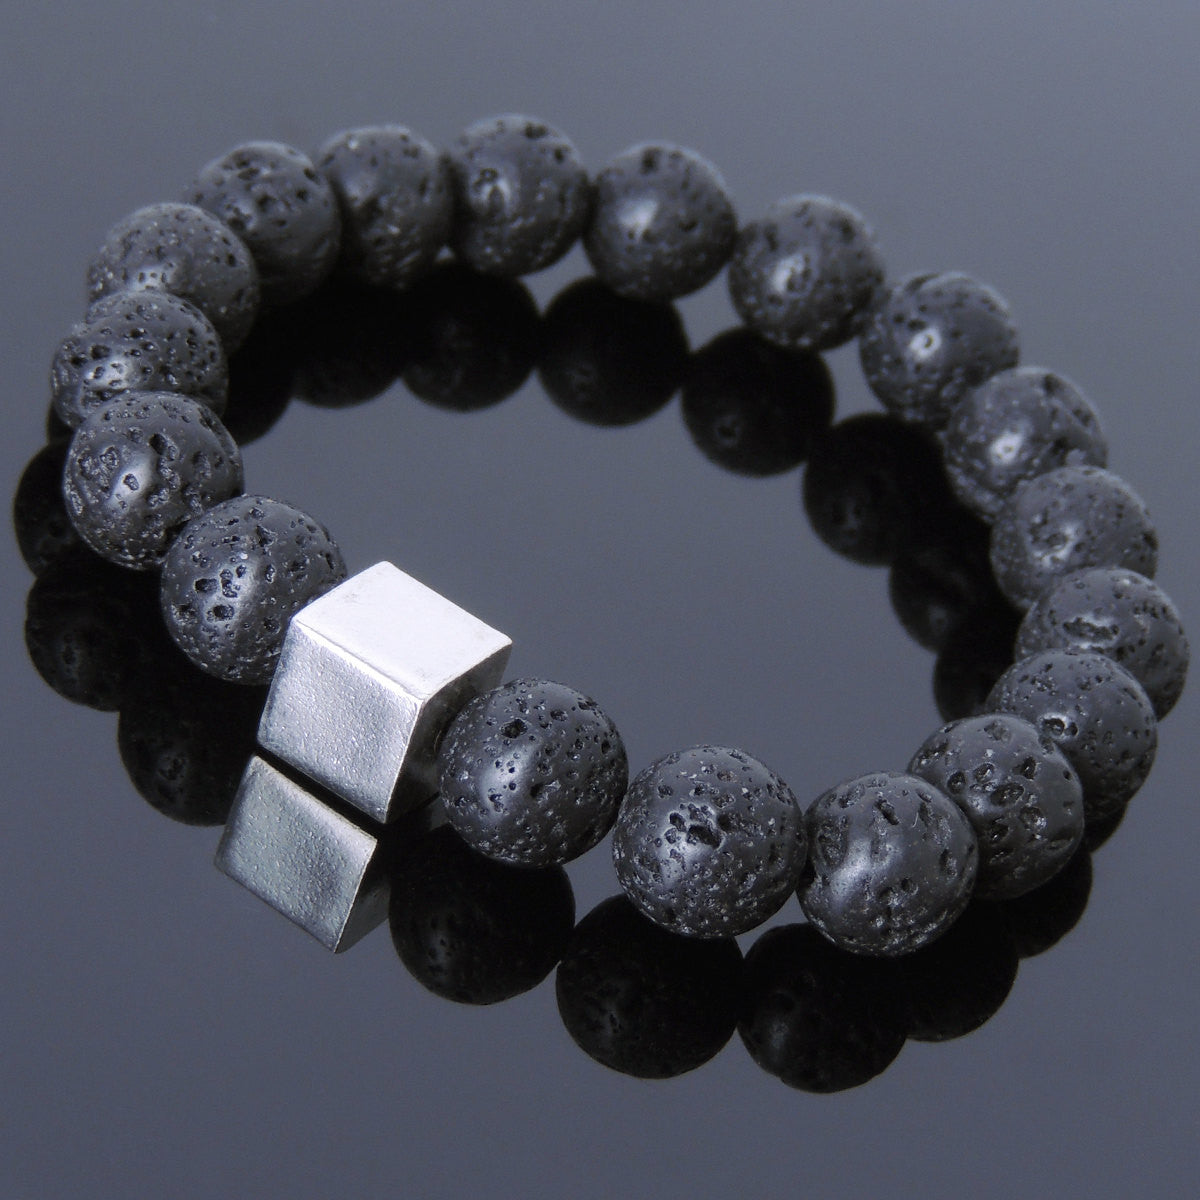 10mm Lava Rock Healing Gemstone Bracelet with S925 Sterling Silver Geometric Cube Bead - Handmade by Gem & Silver BR577